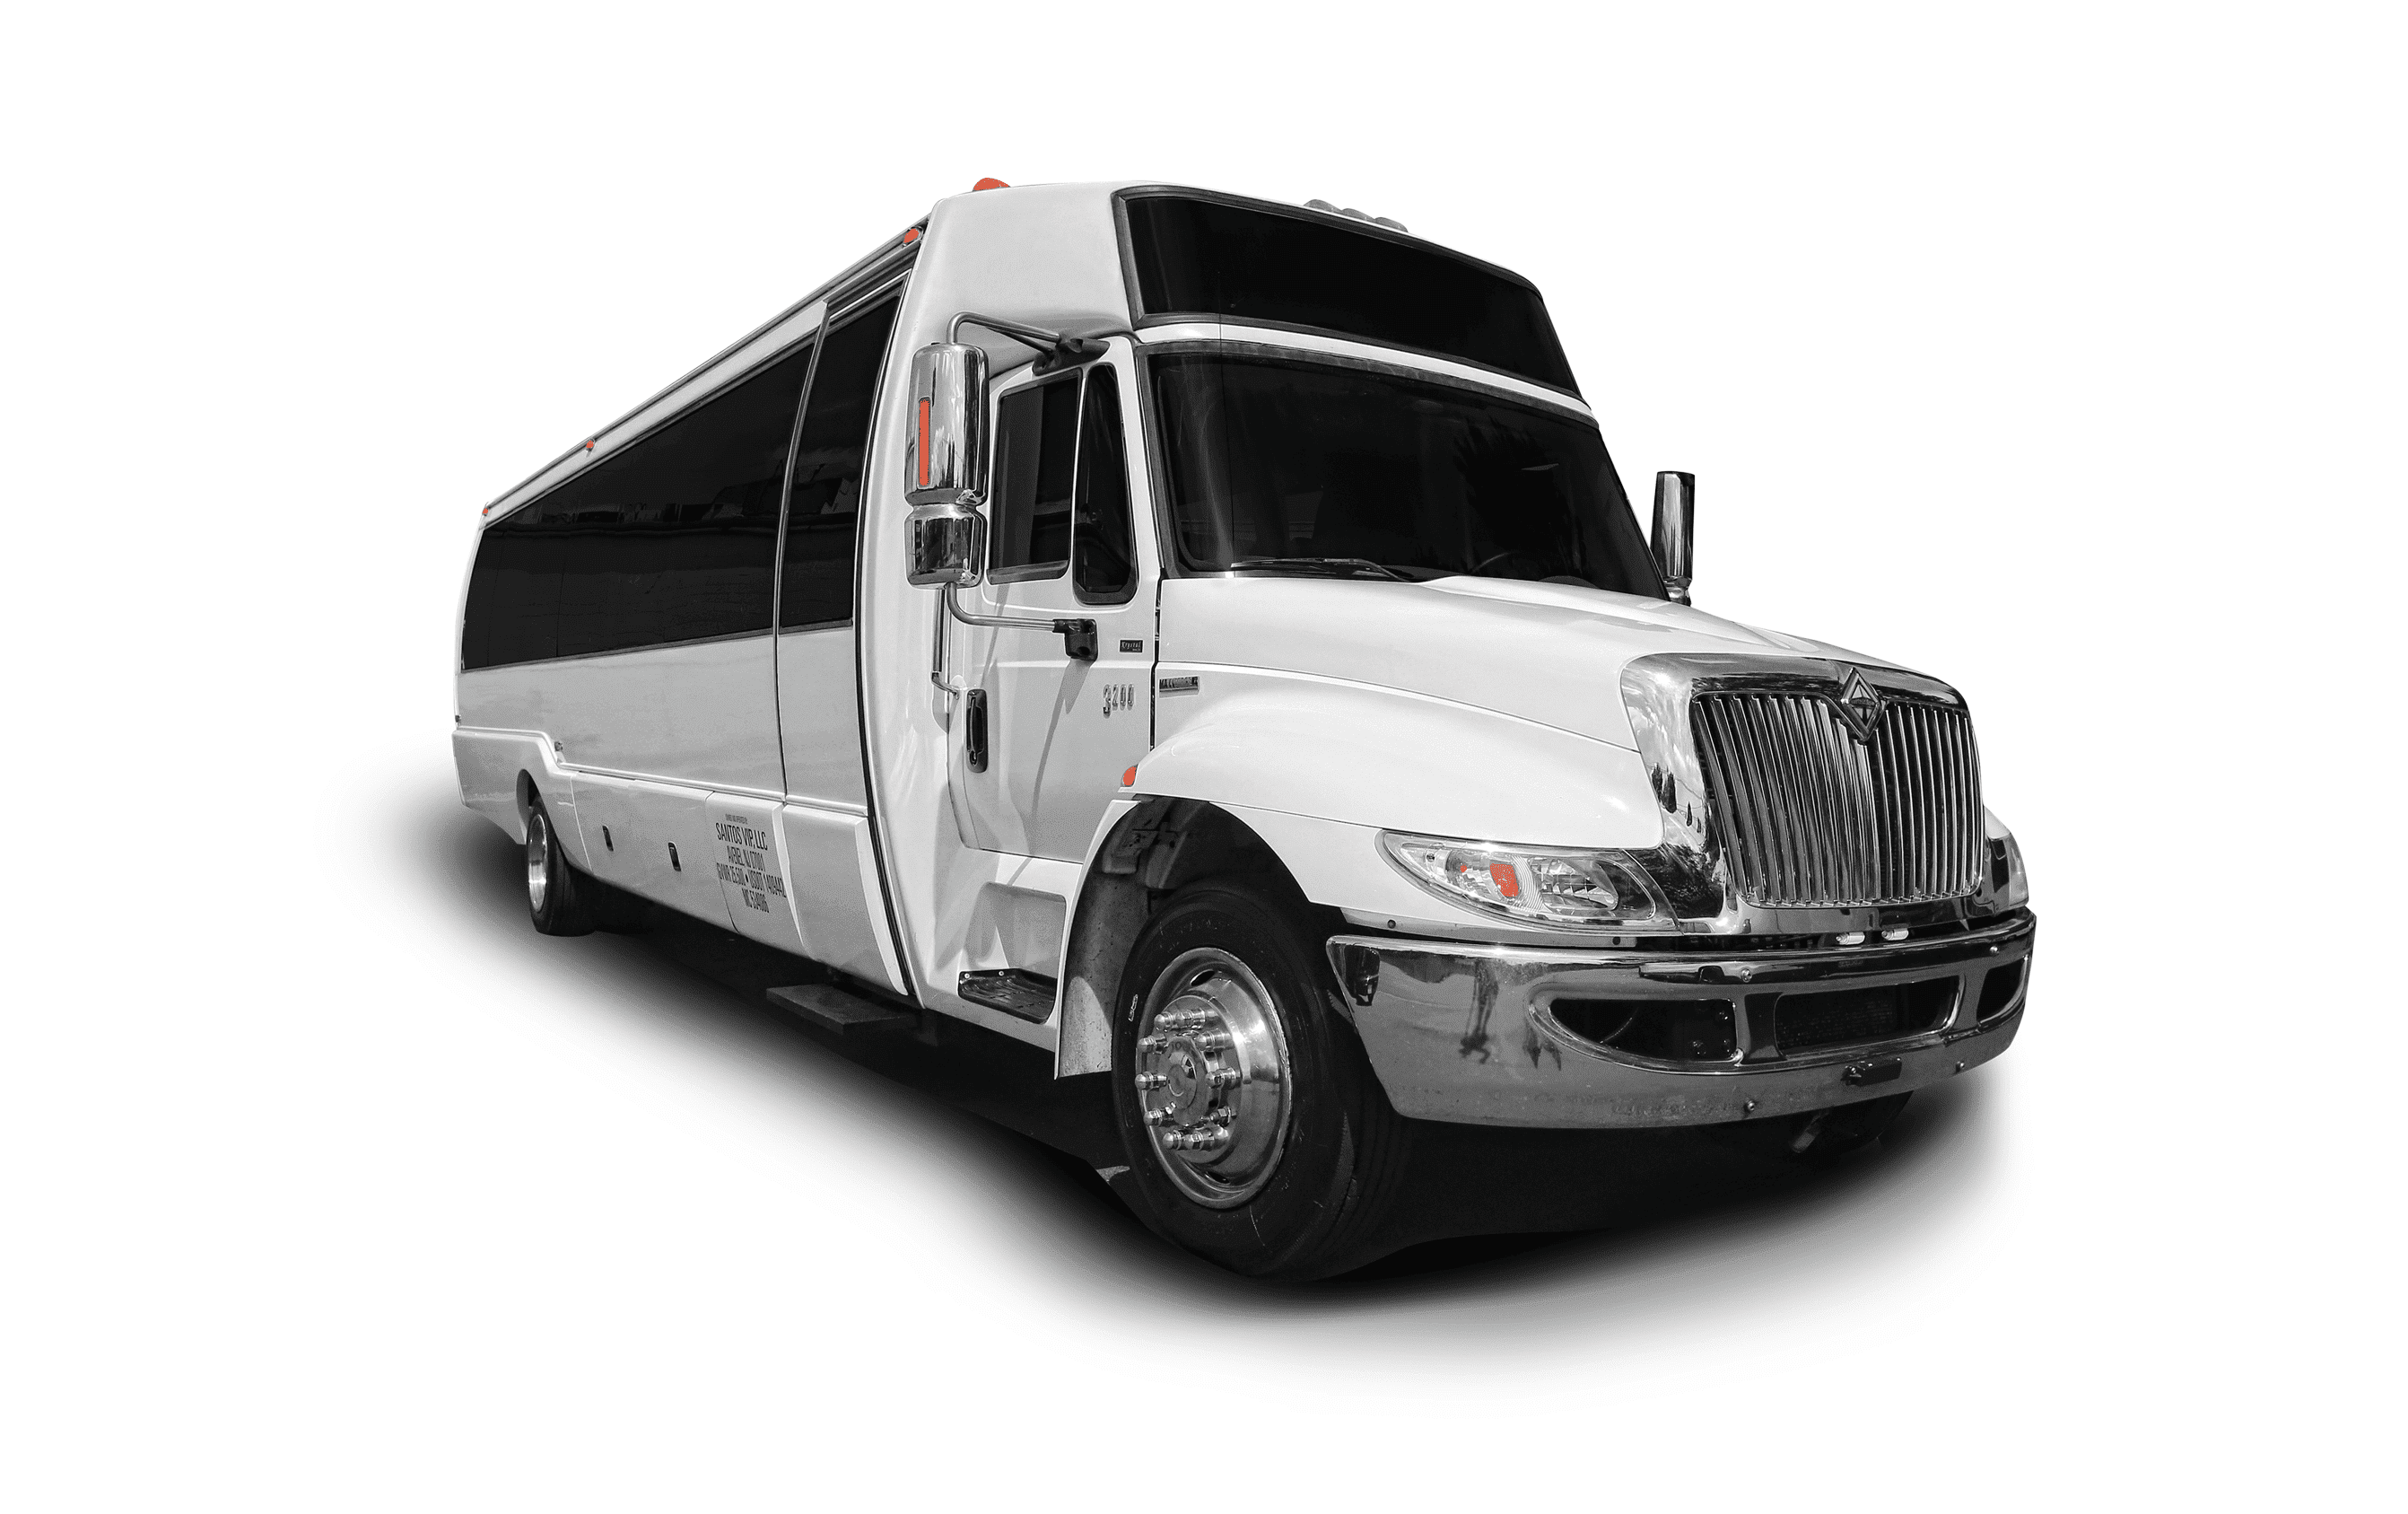 28 passenger VIP Limo Coach Party Bus rental for bachelorette party limo